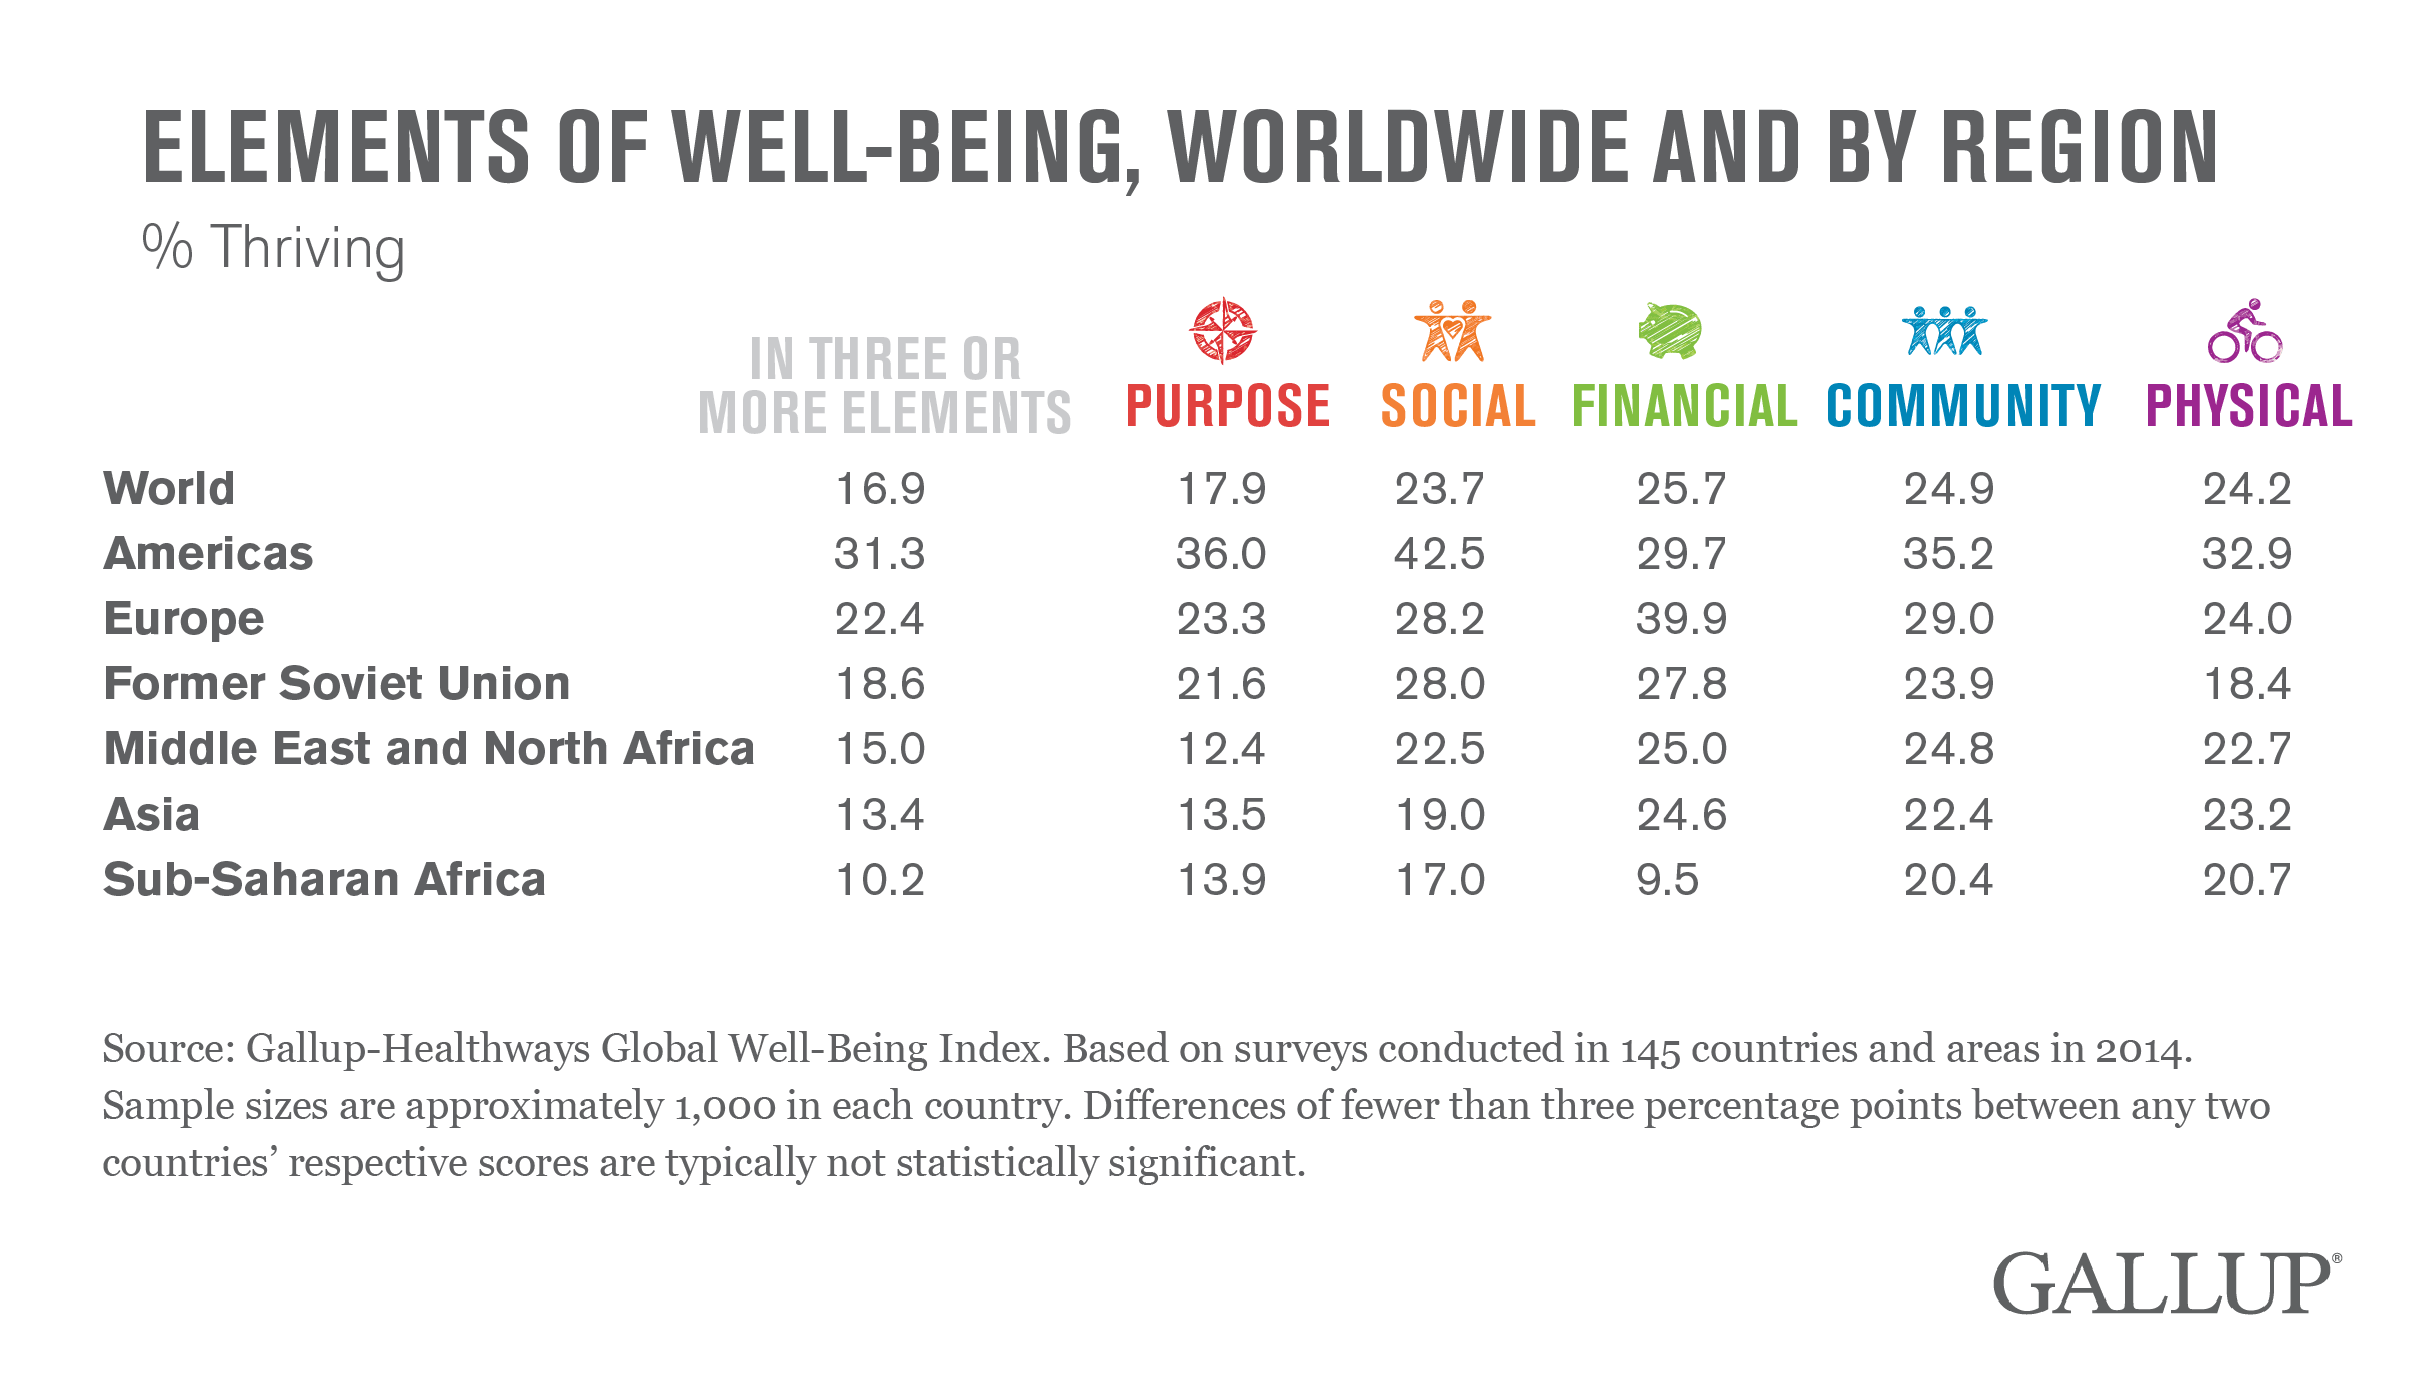 Elements of Well-Being, Worldwide and by Region, 2014